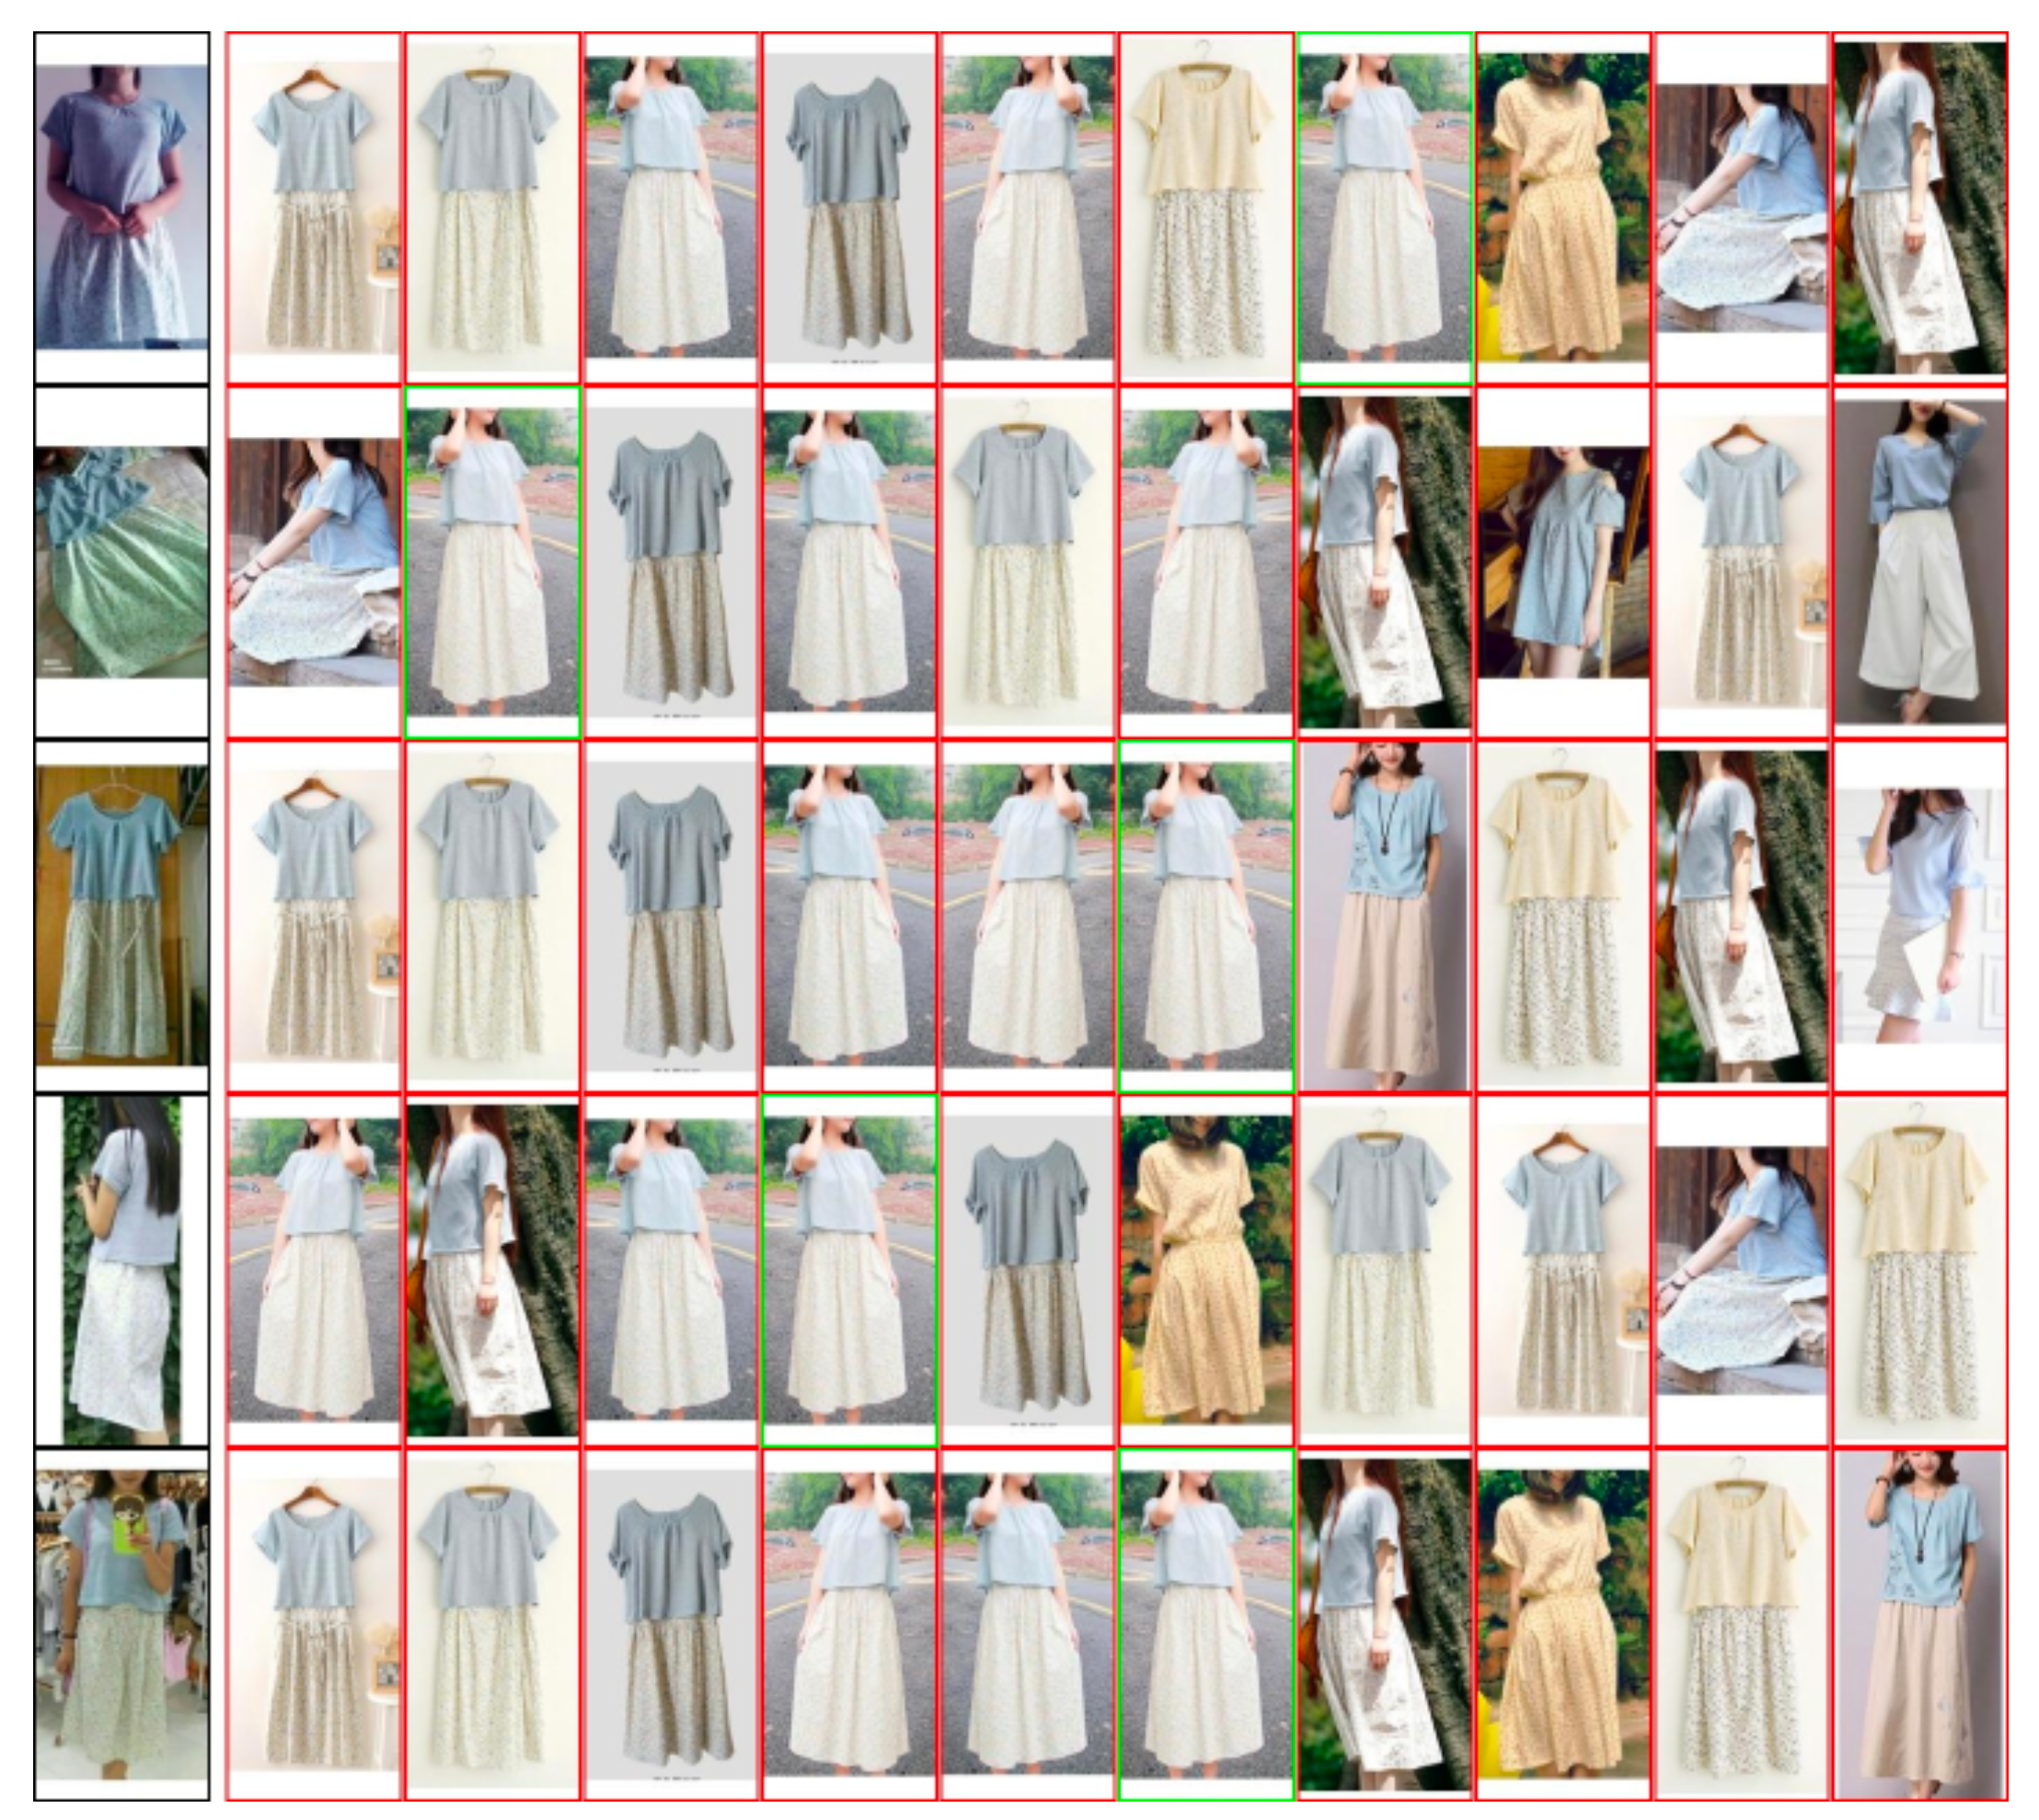 Examples of retrieval for the query images with product ids from presented in Figure 1 produced by our best model on 320x320 images.